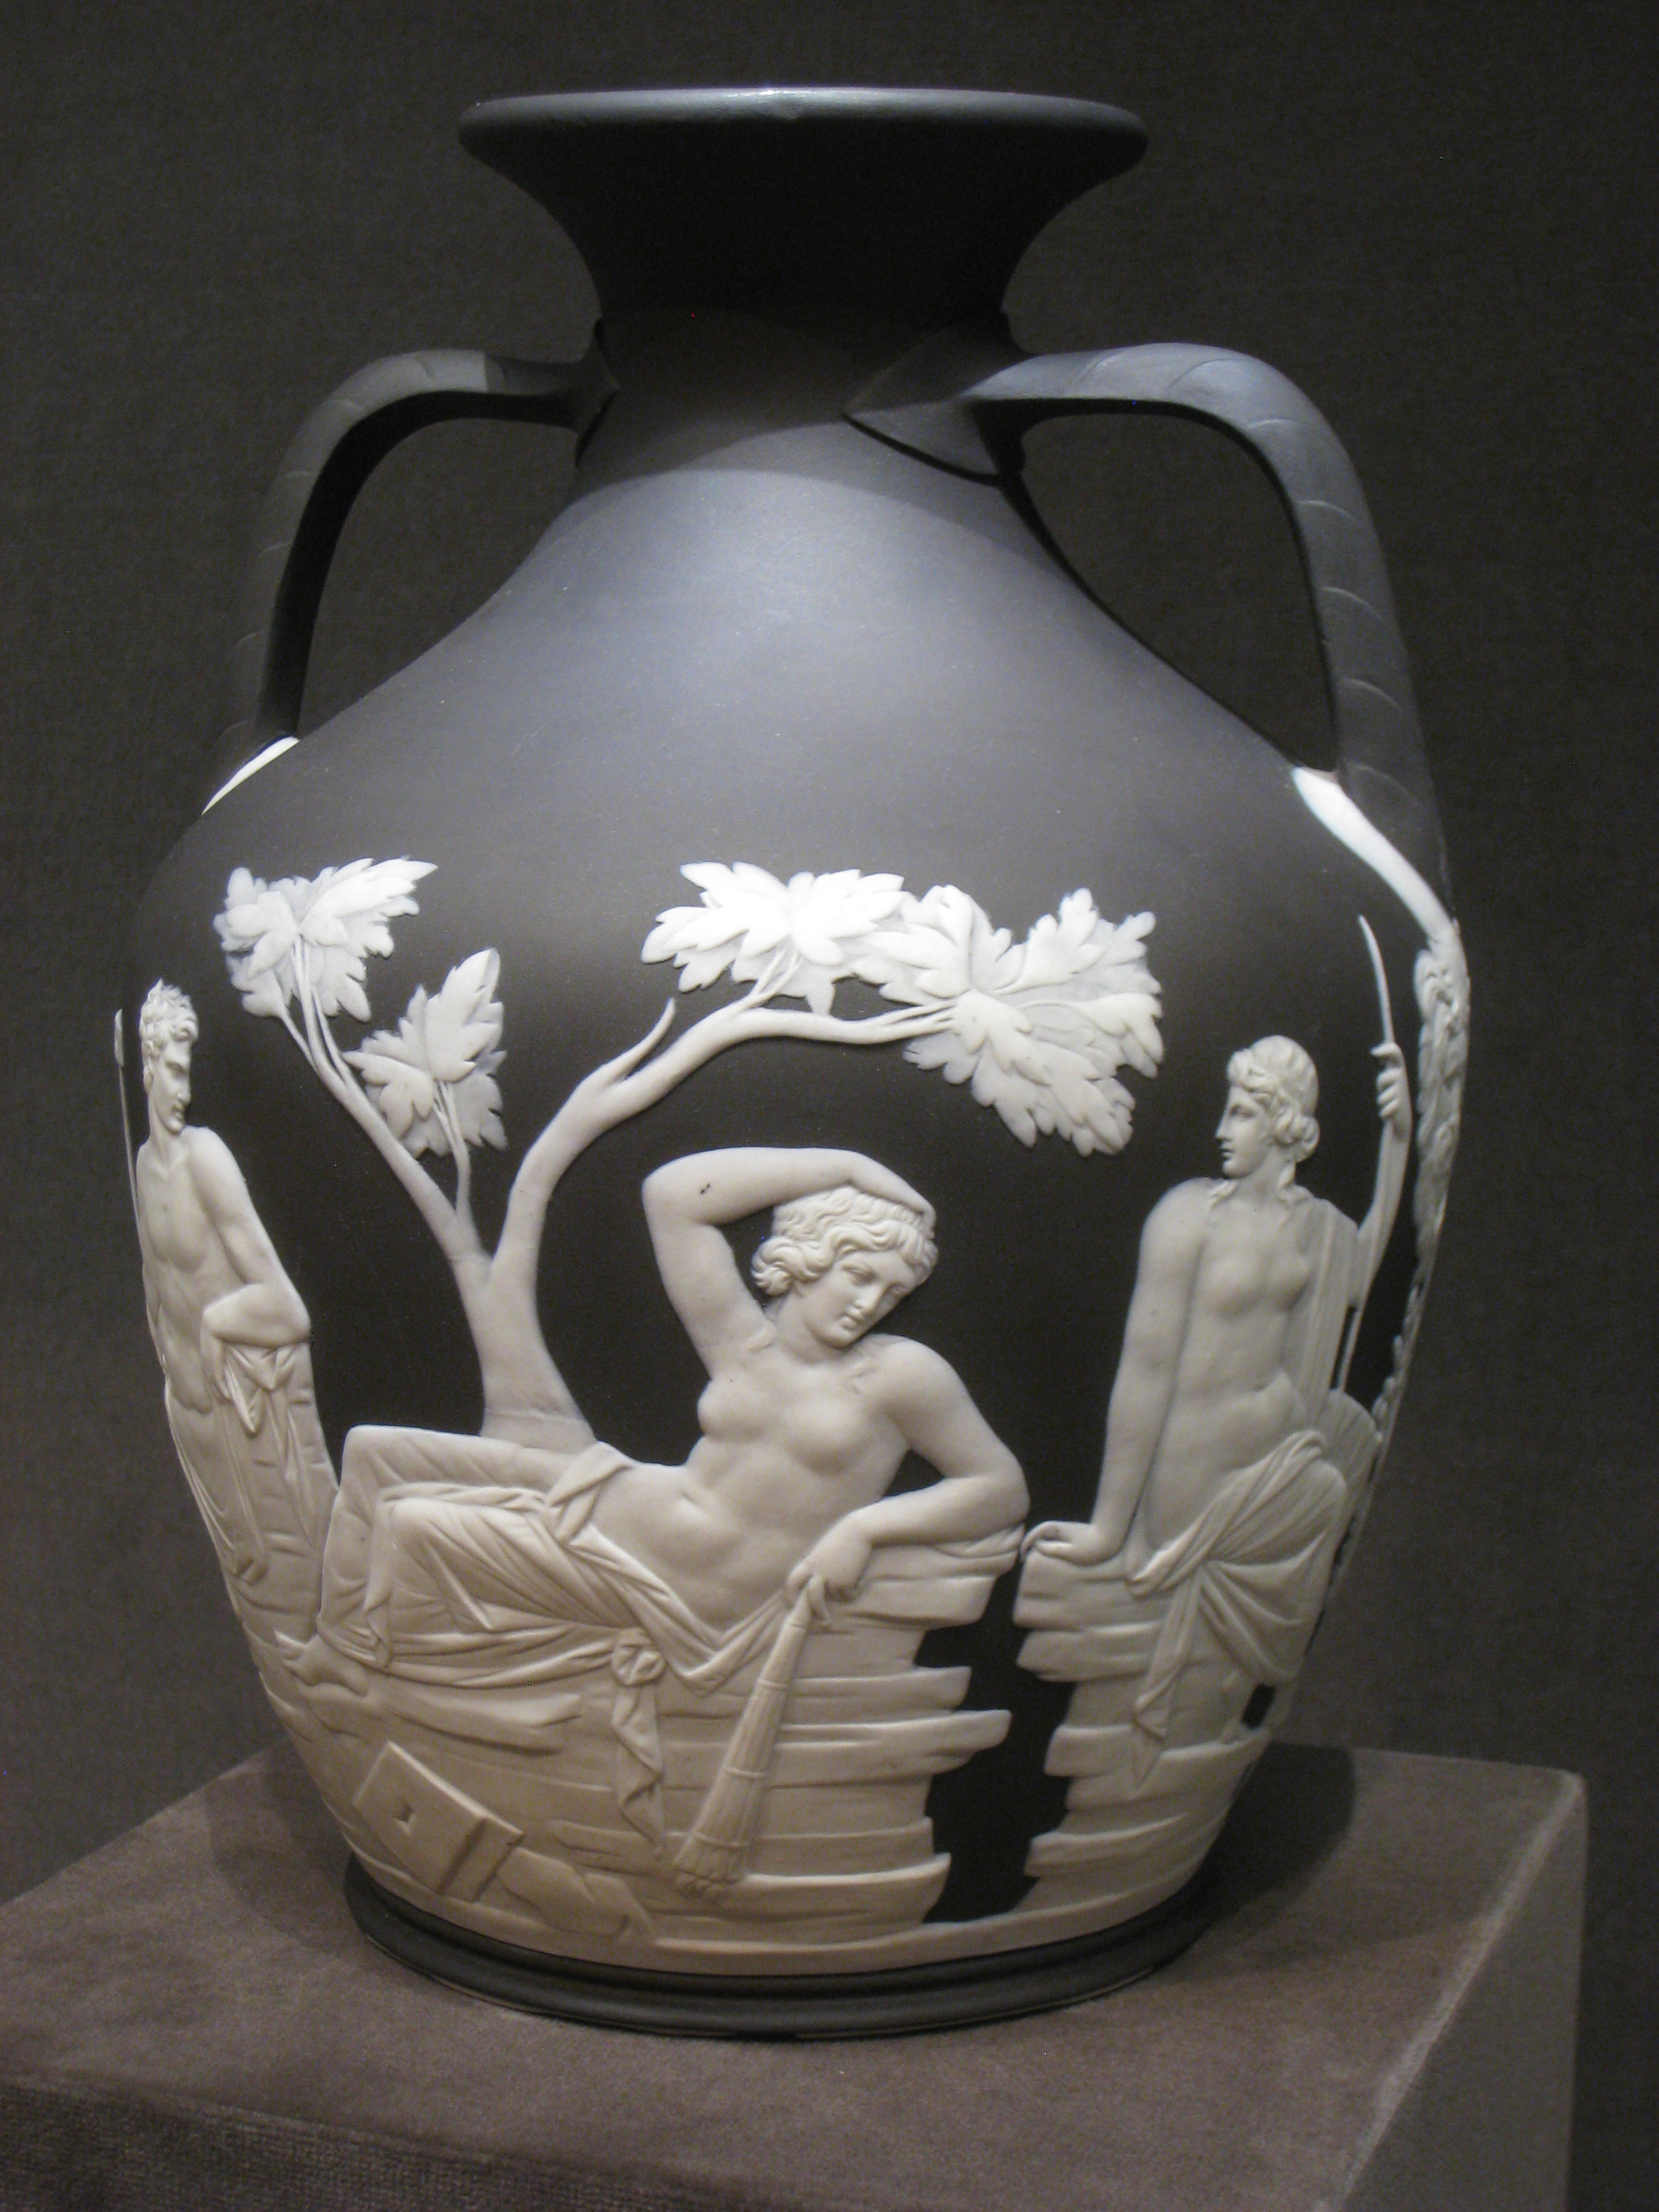 Fileportland vase by wedgwood view 1g wikimedia commons fileportland vase by wedgwood view 1g reviewsmspy